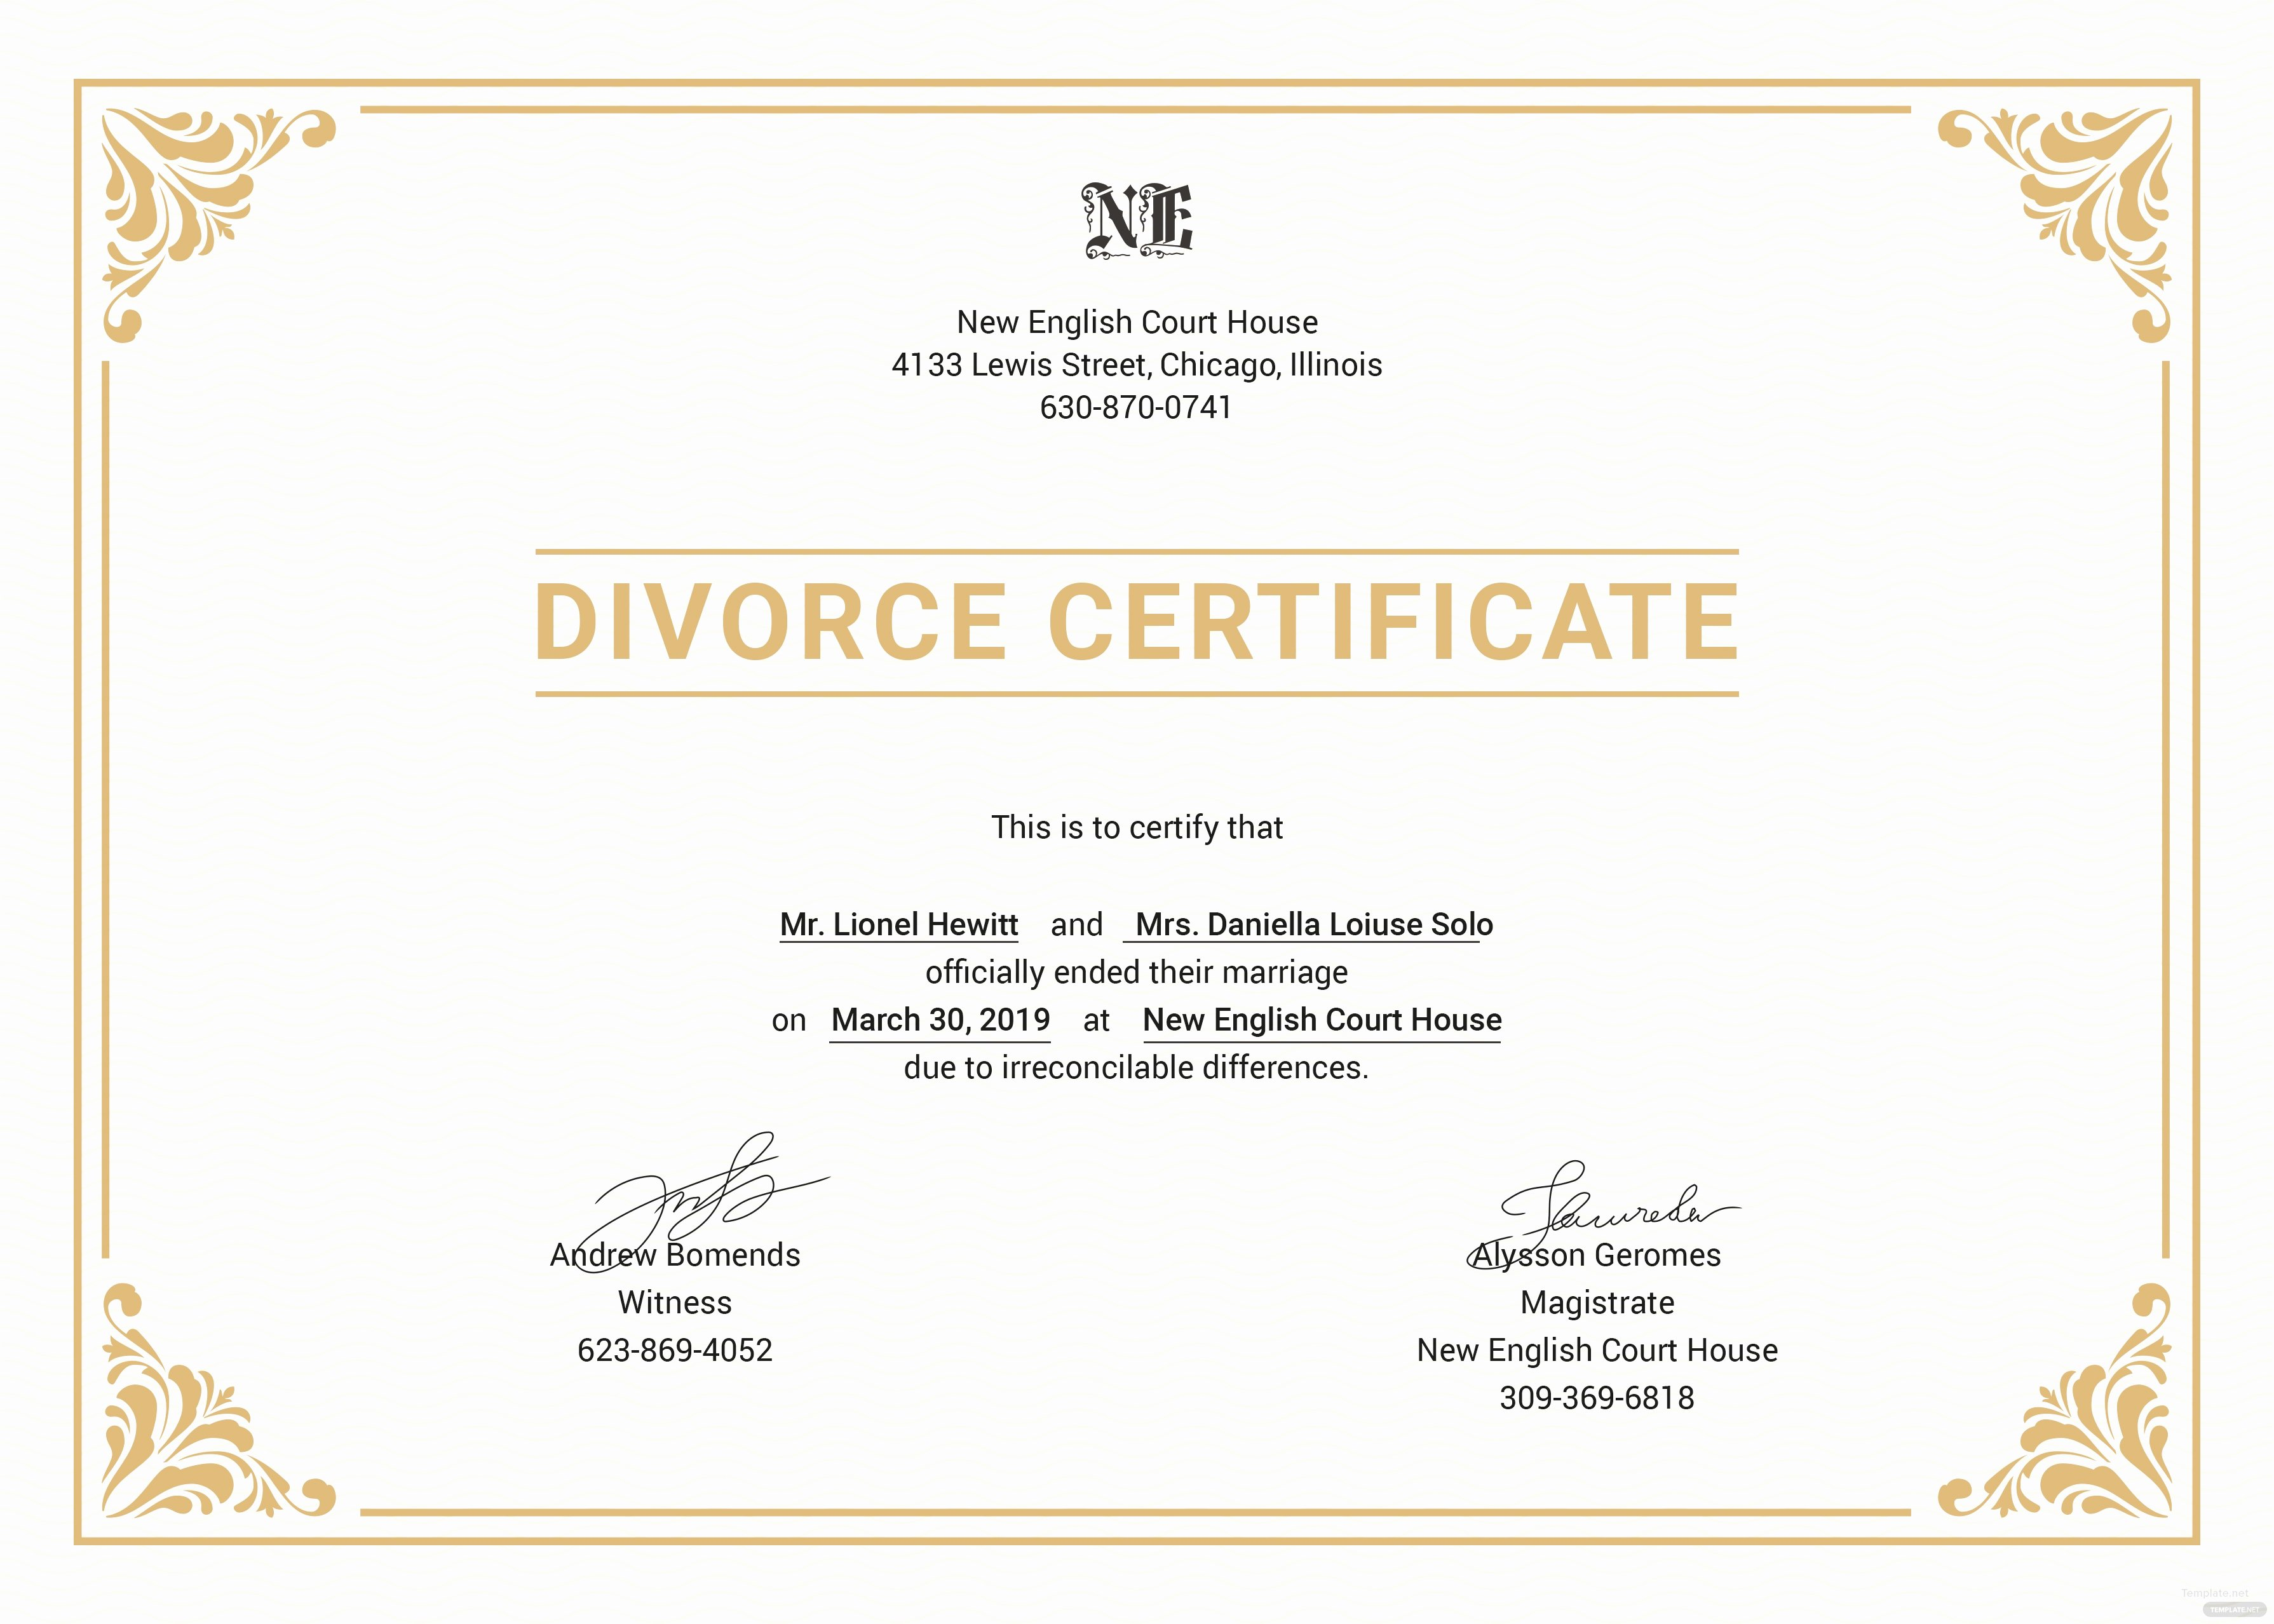 Fake Divorce Certificate Maker New Free Divorce Certificate Template In Psd Ms Word